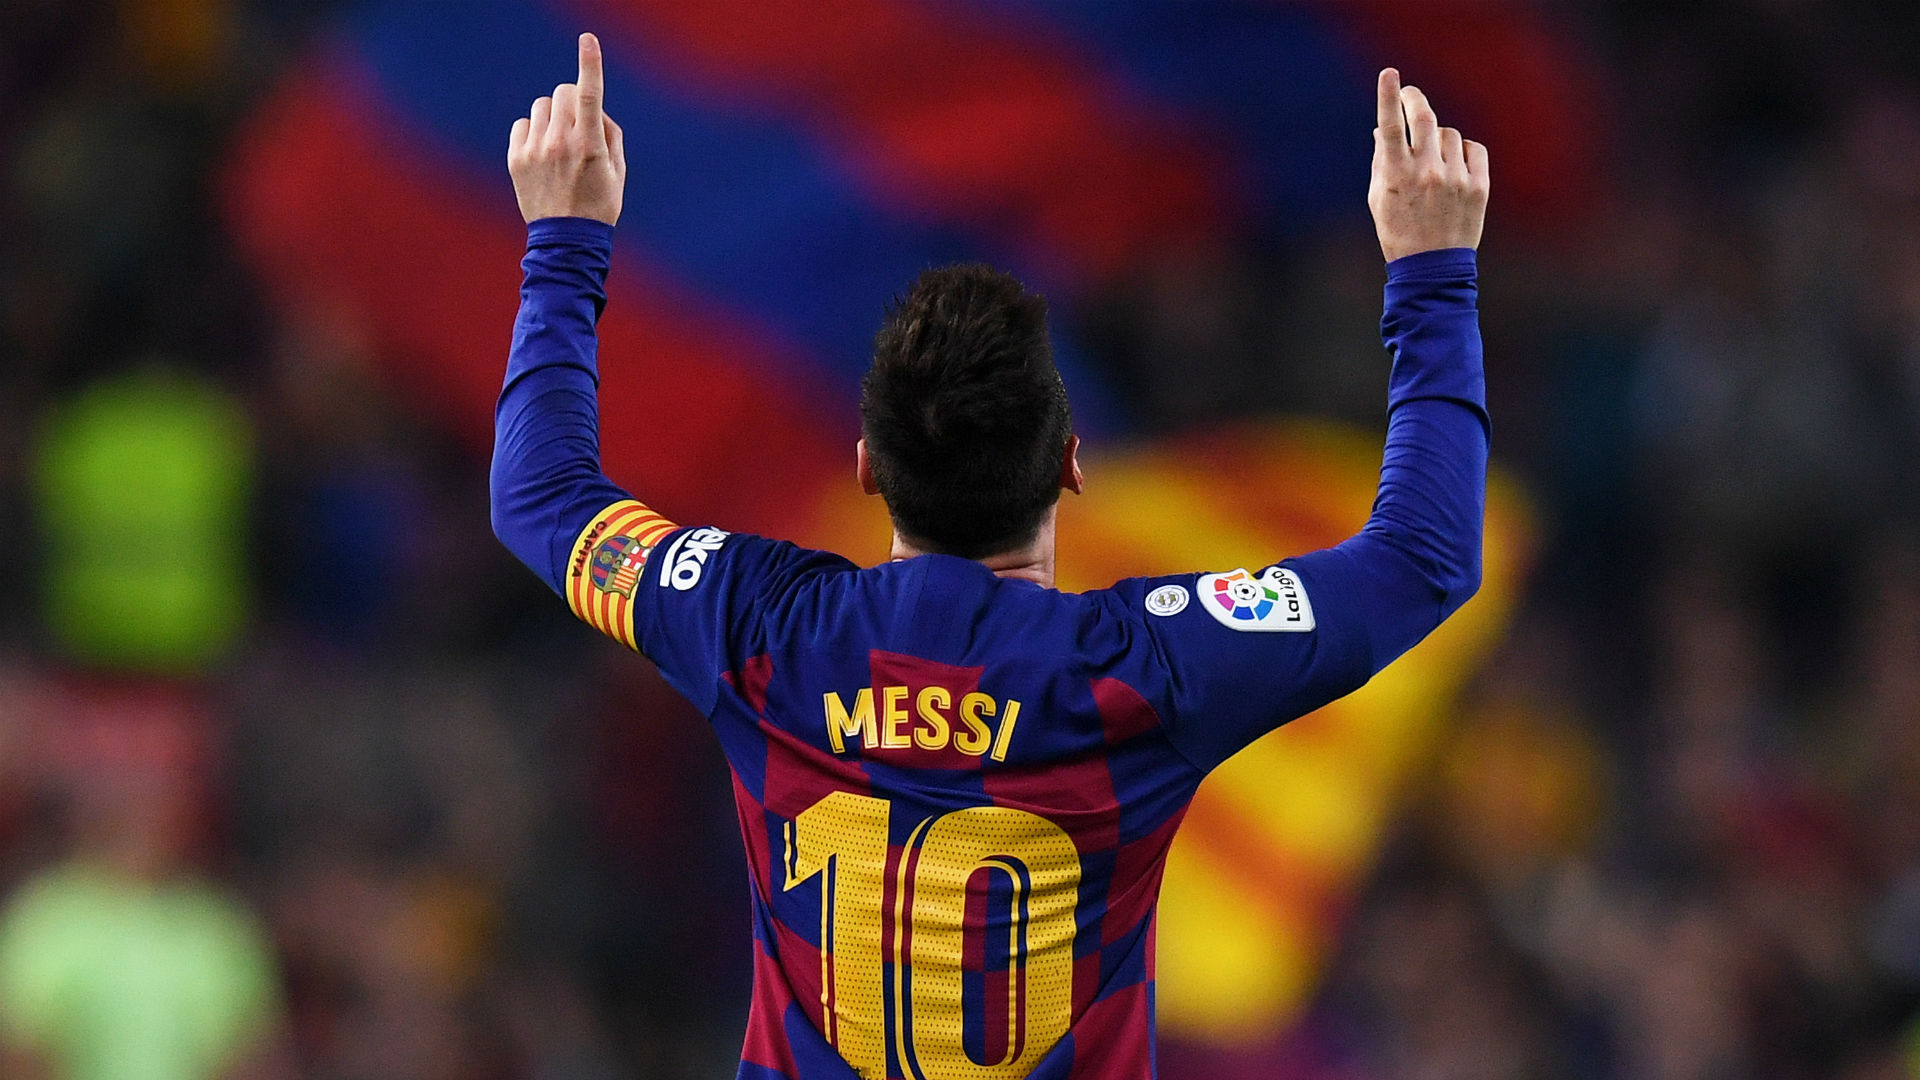 Lionel Messi scores 700th career goal as Barca great makes history again